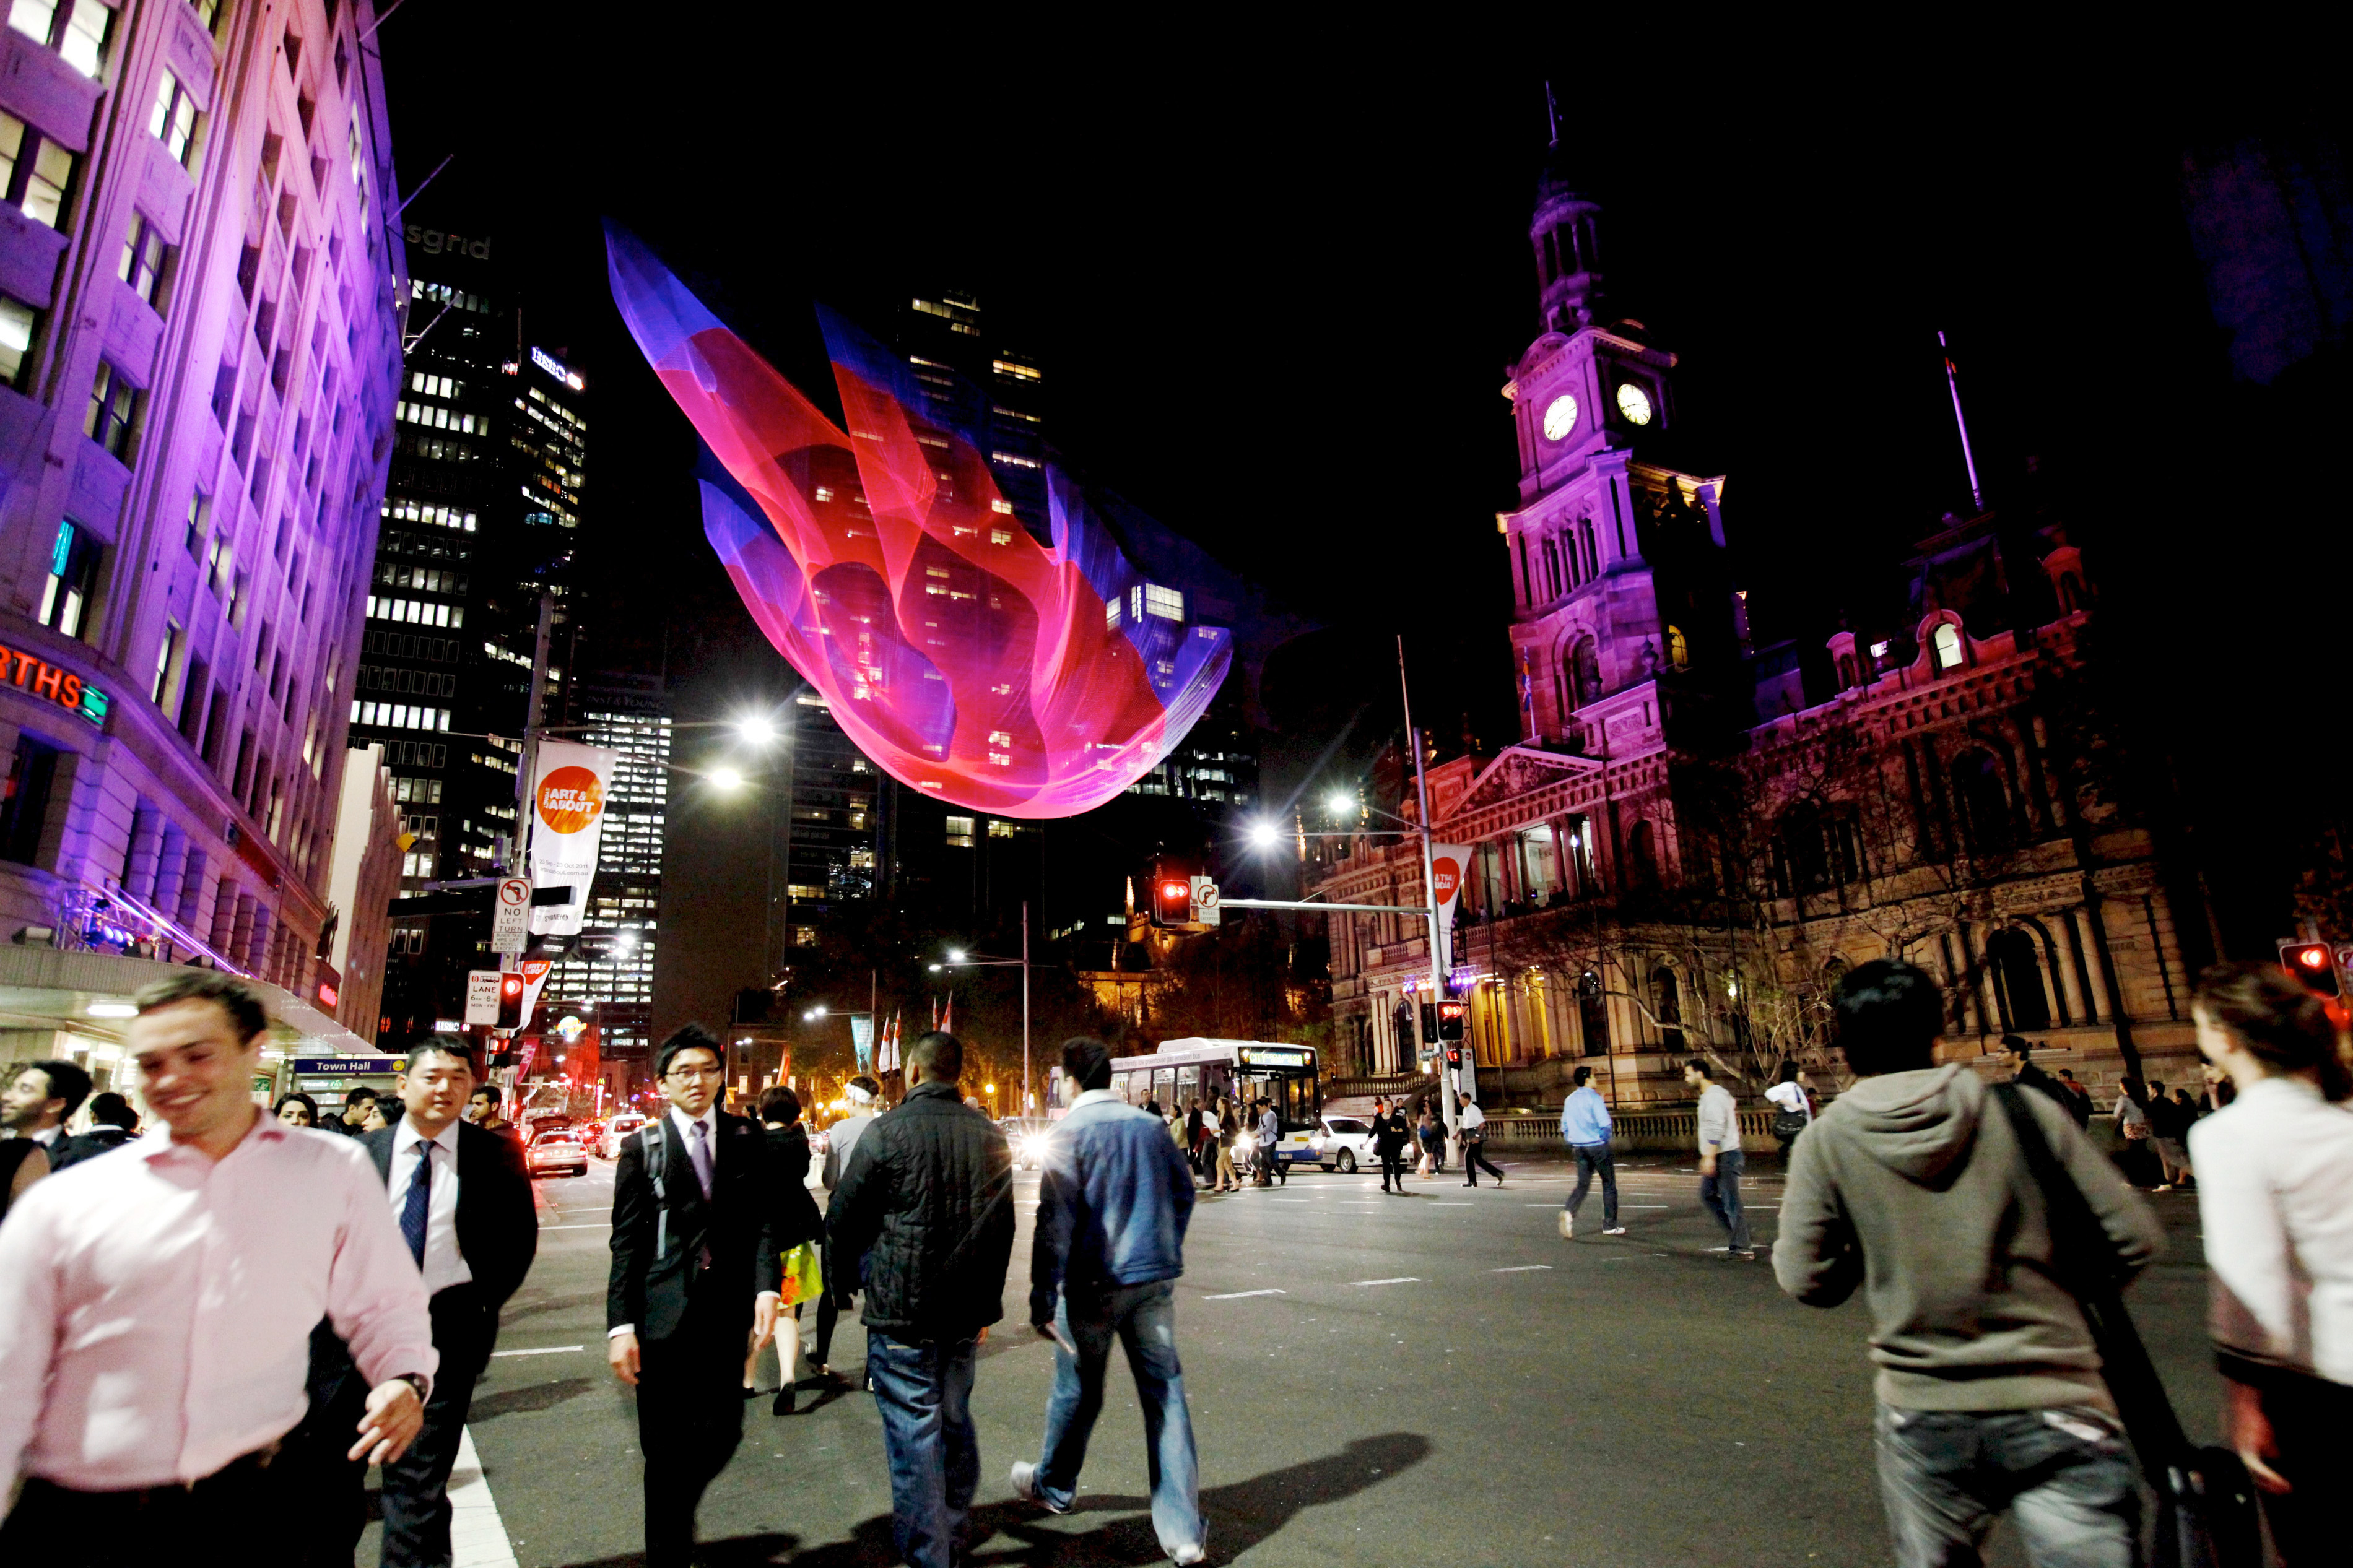 Janet Echelman, Tsunami 1.26. Image: Sharon Hickey, City of Sydney